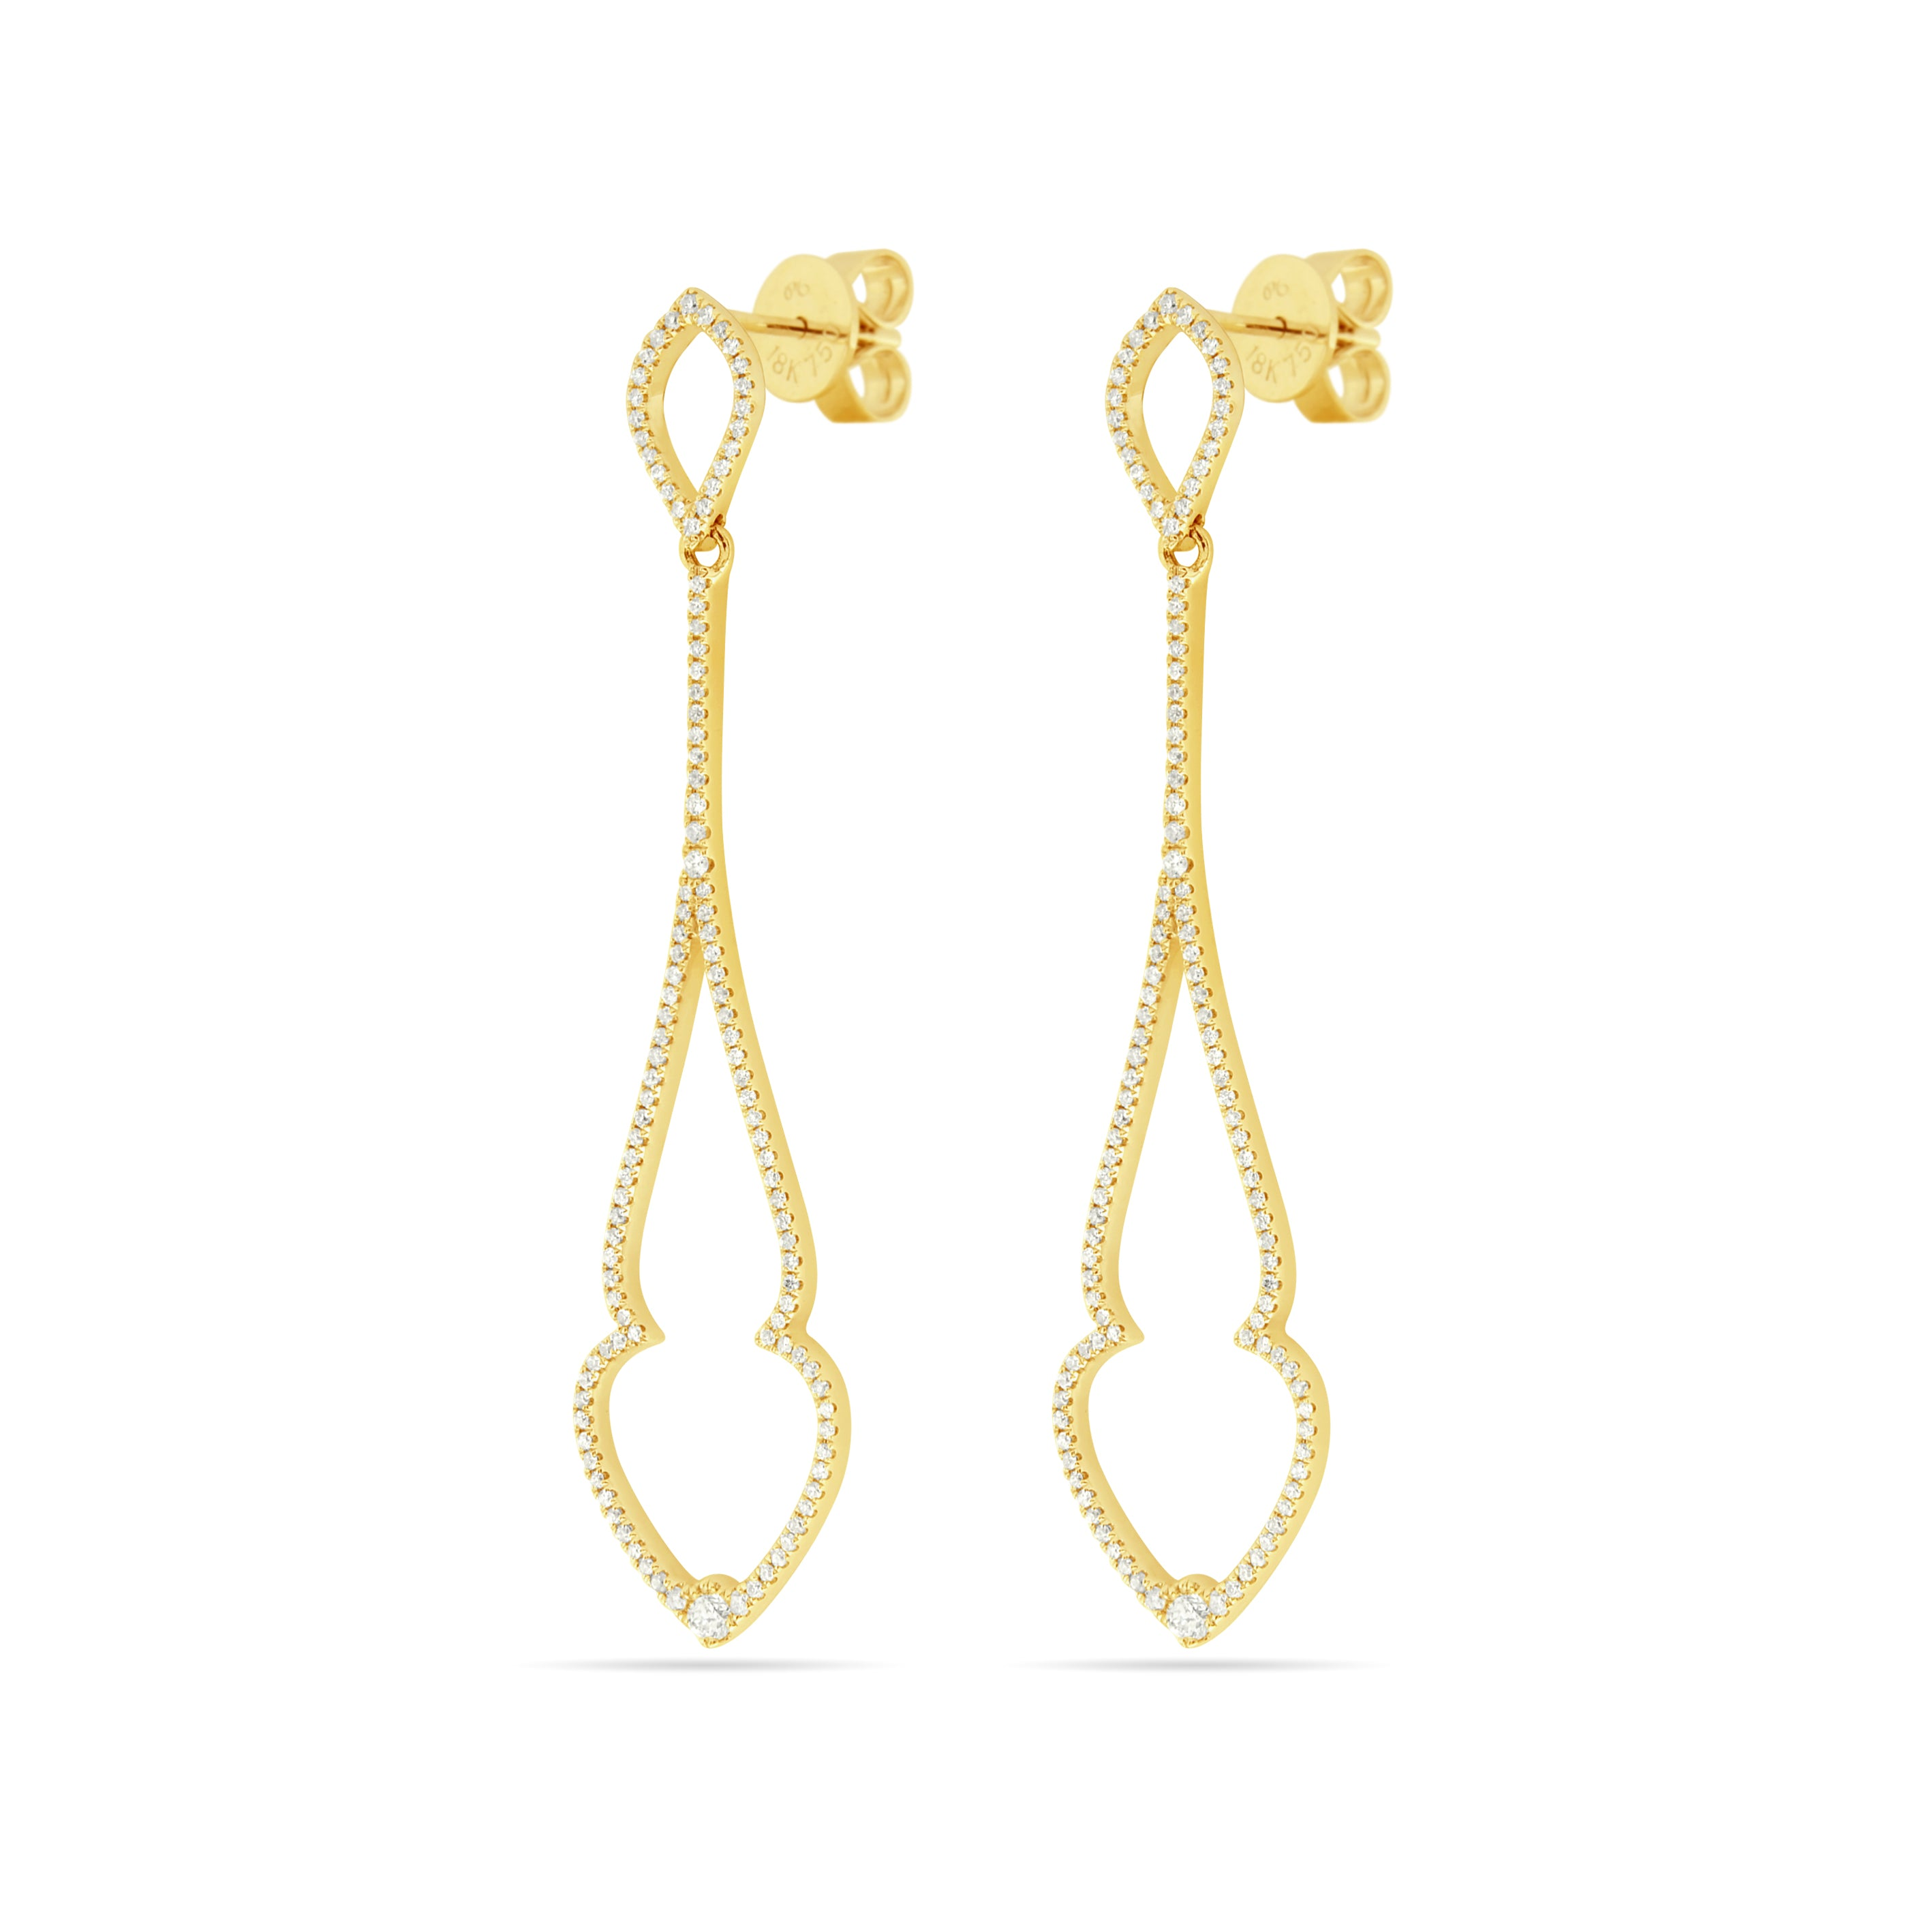 LUCERNA Earrings